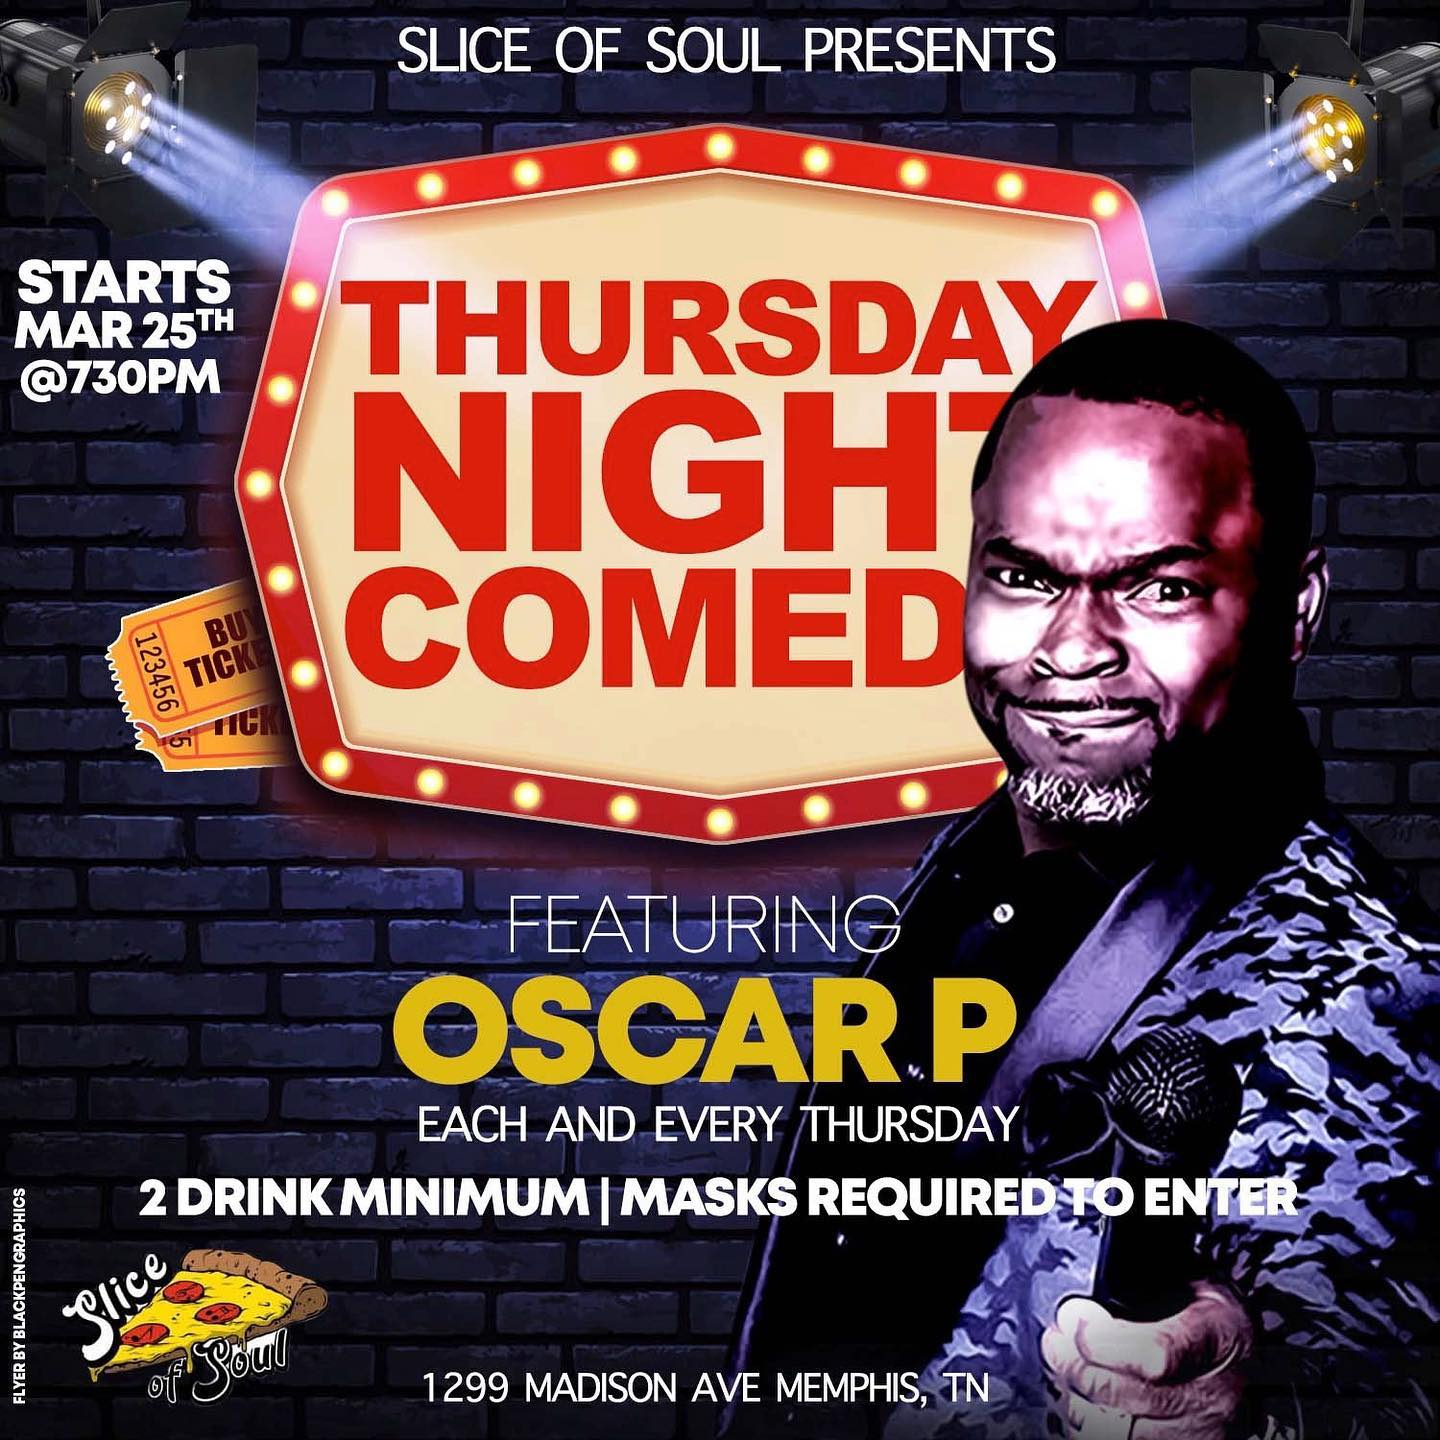 Comedian Oscar P Serves Up Live Performance in Memphis Every Thursday Night